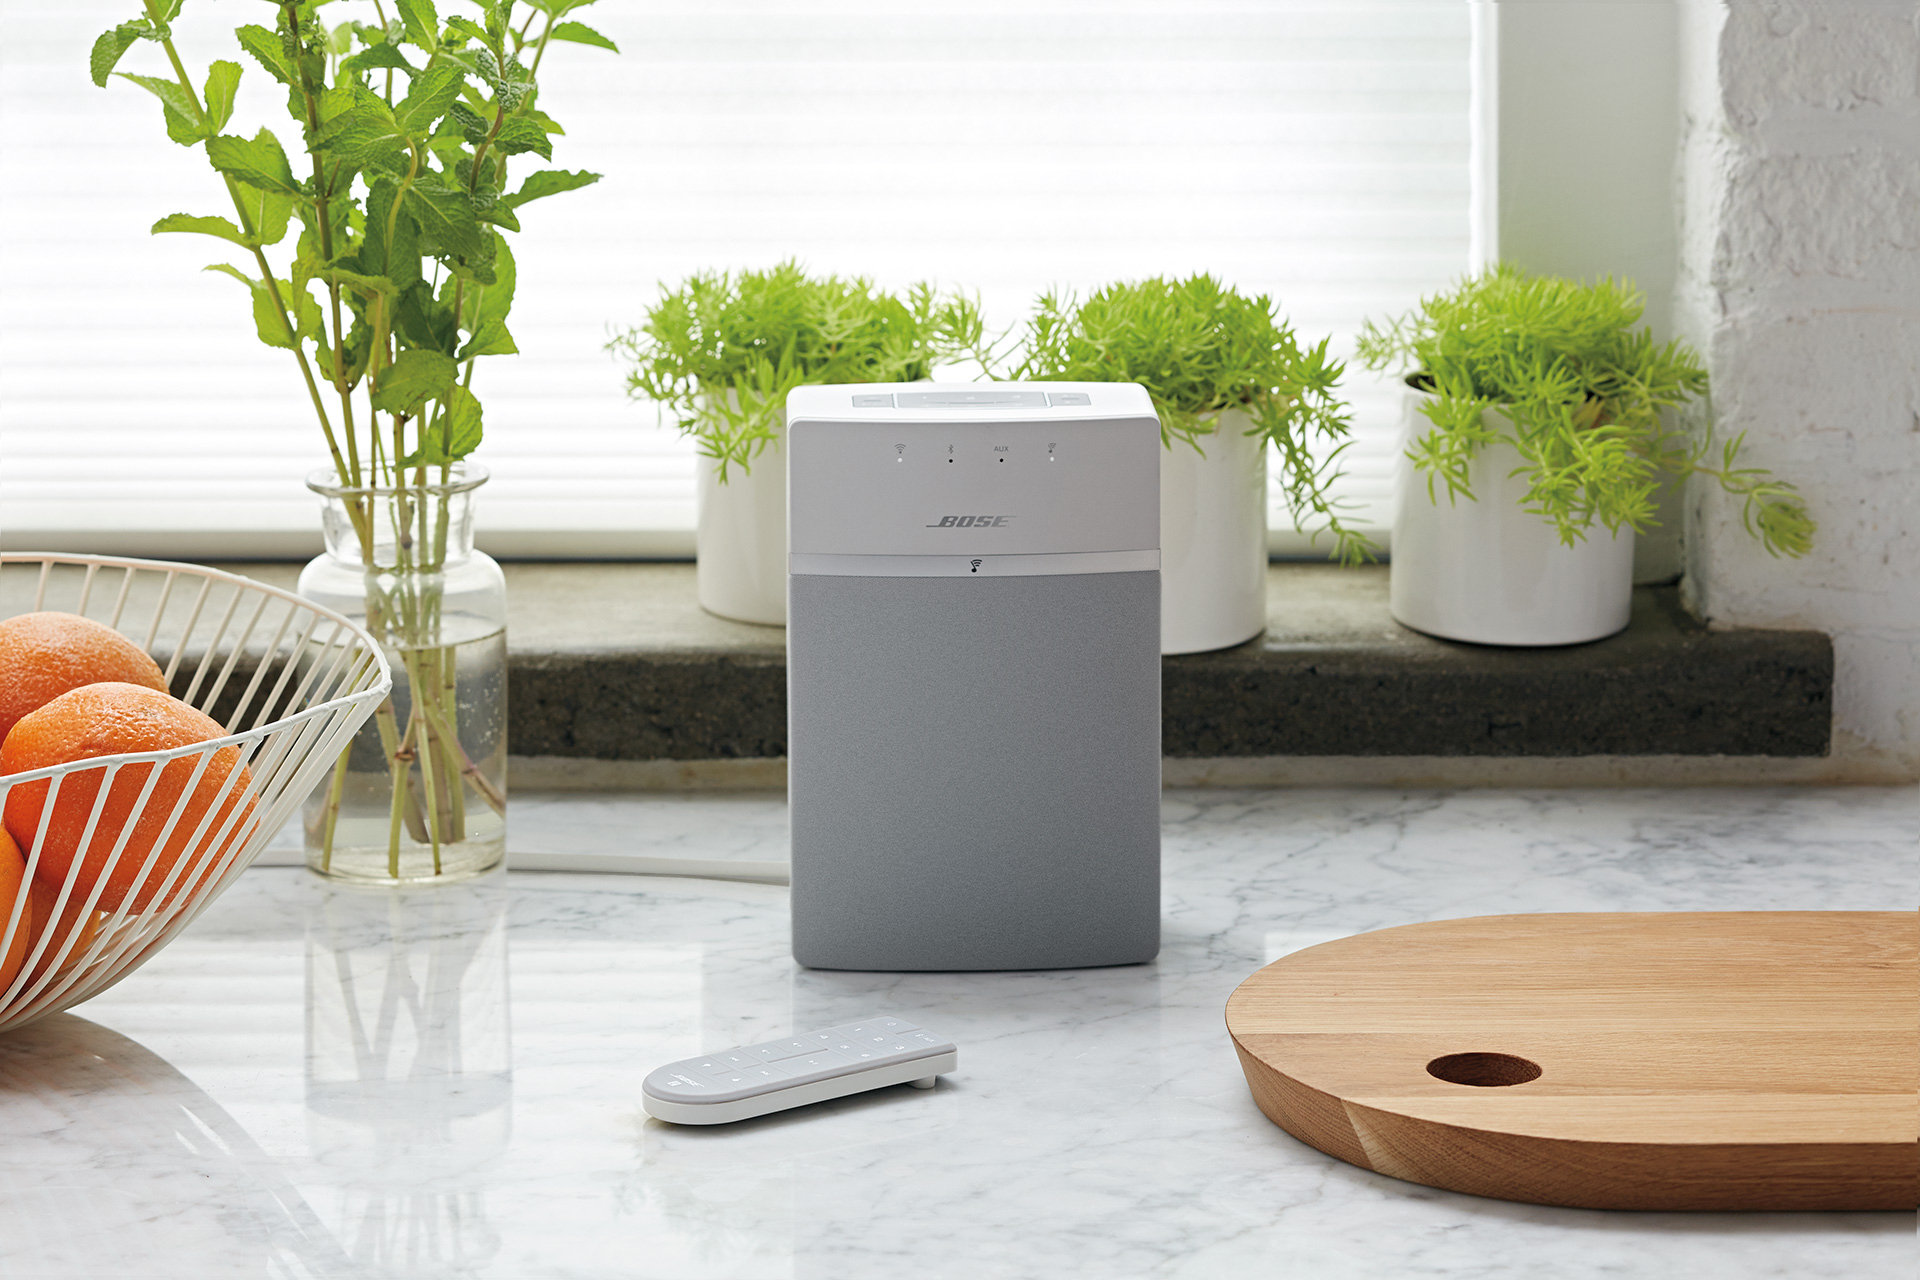 bose soundtouch 10. soundtouch 10 wireless music system. bose soundtouch .